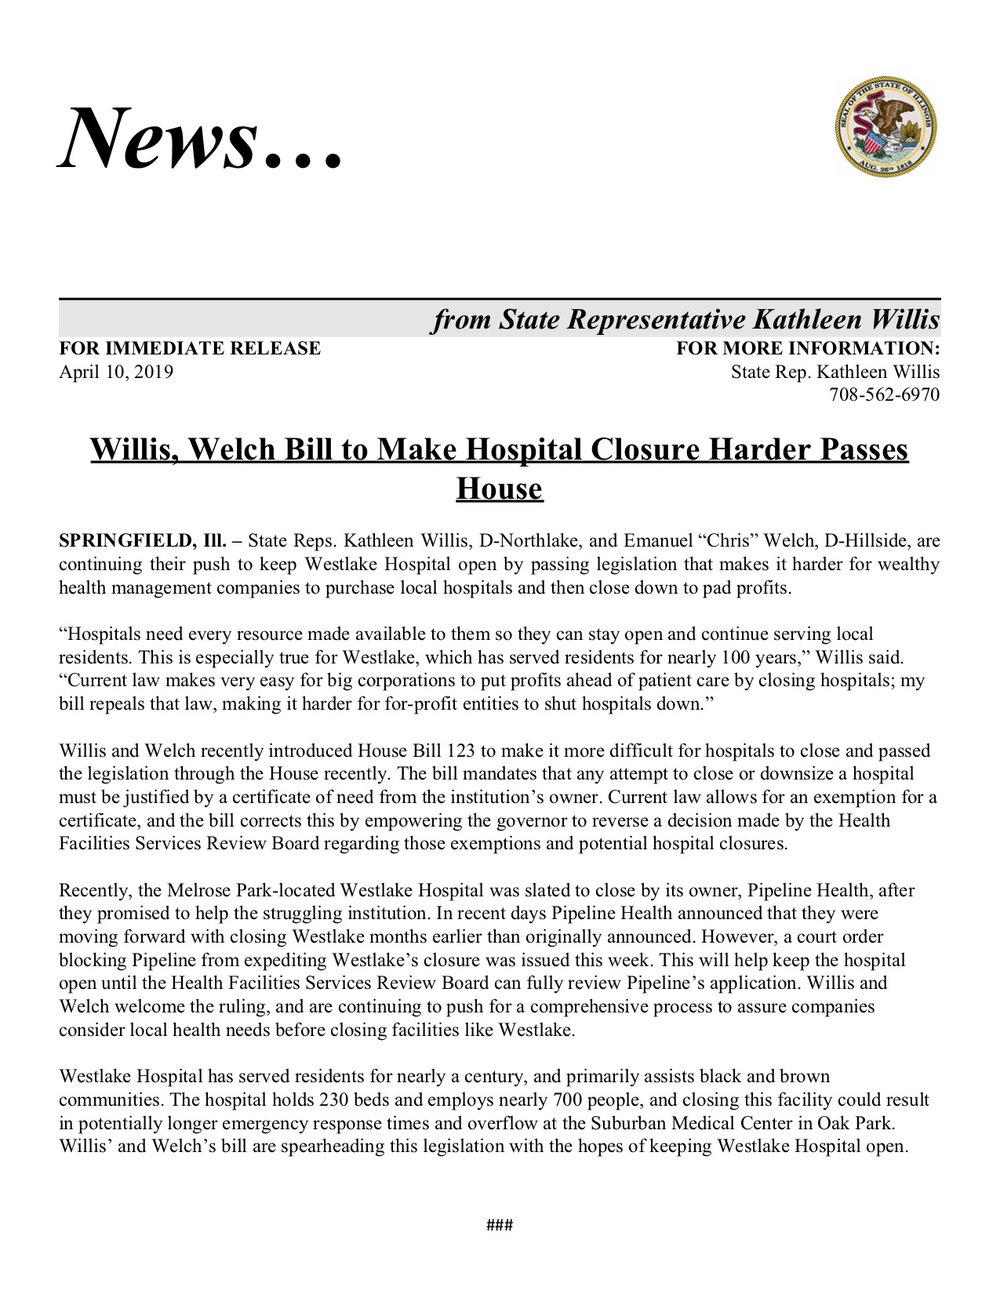 Willis, Welch Bill to Make Hospital Closure Harder Passes House  (April 12, 2019)